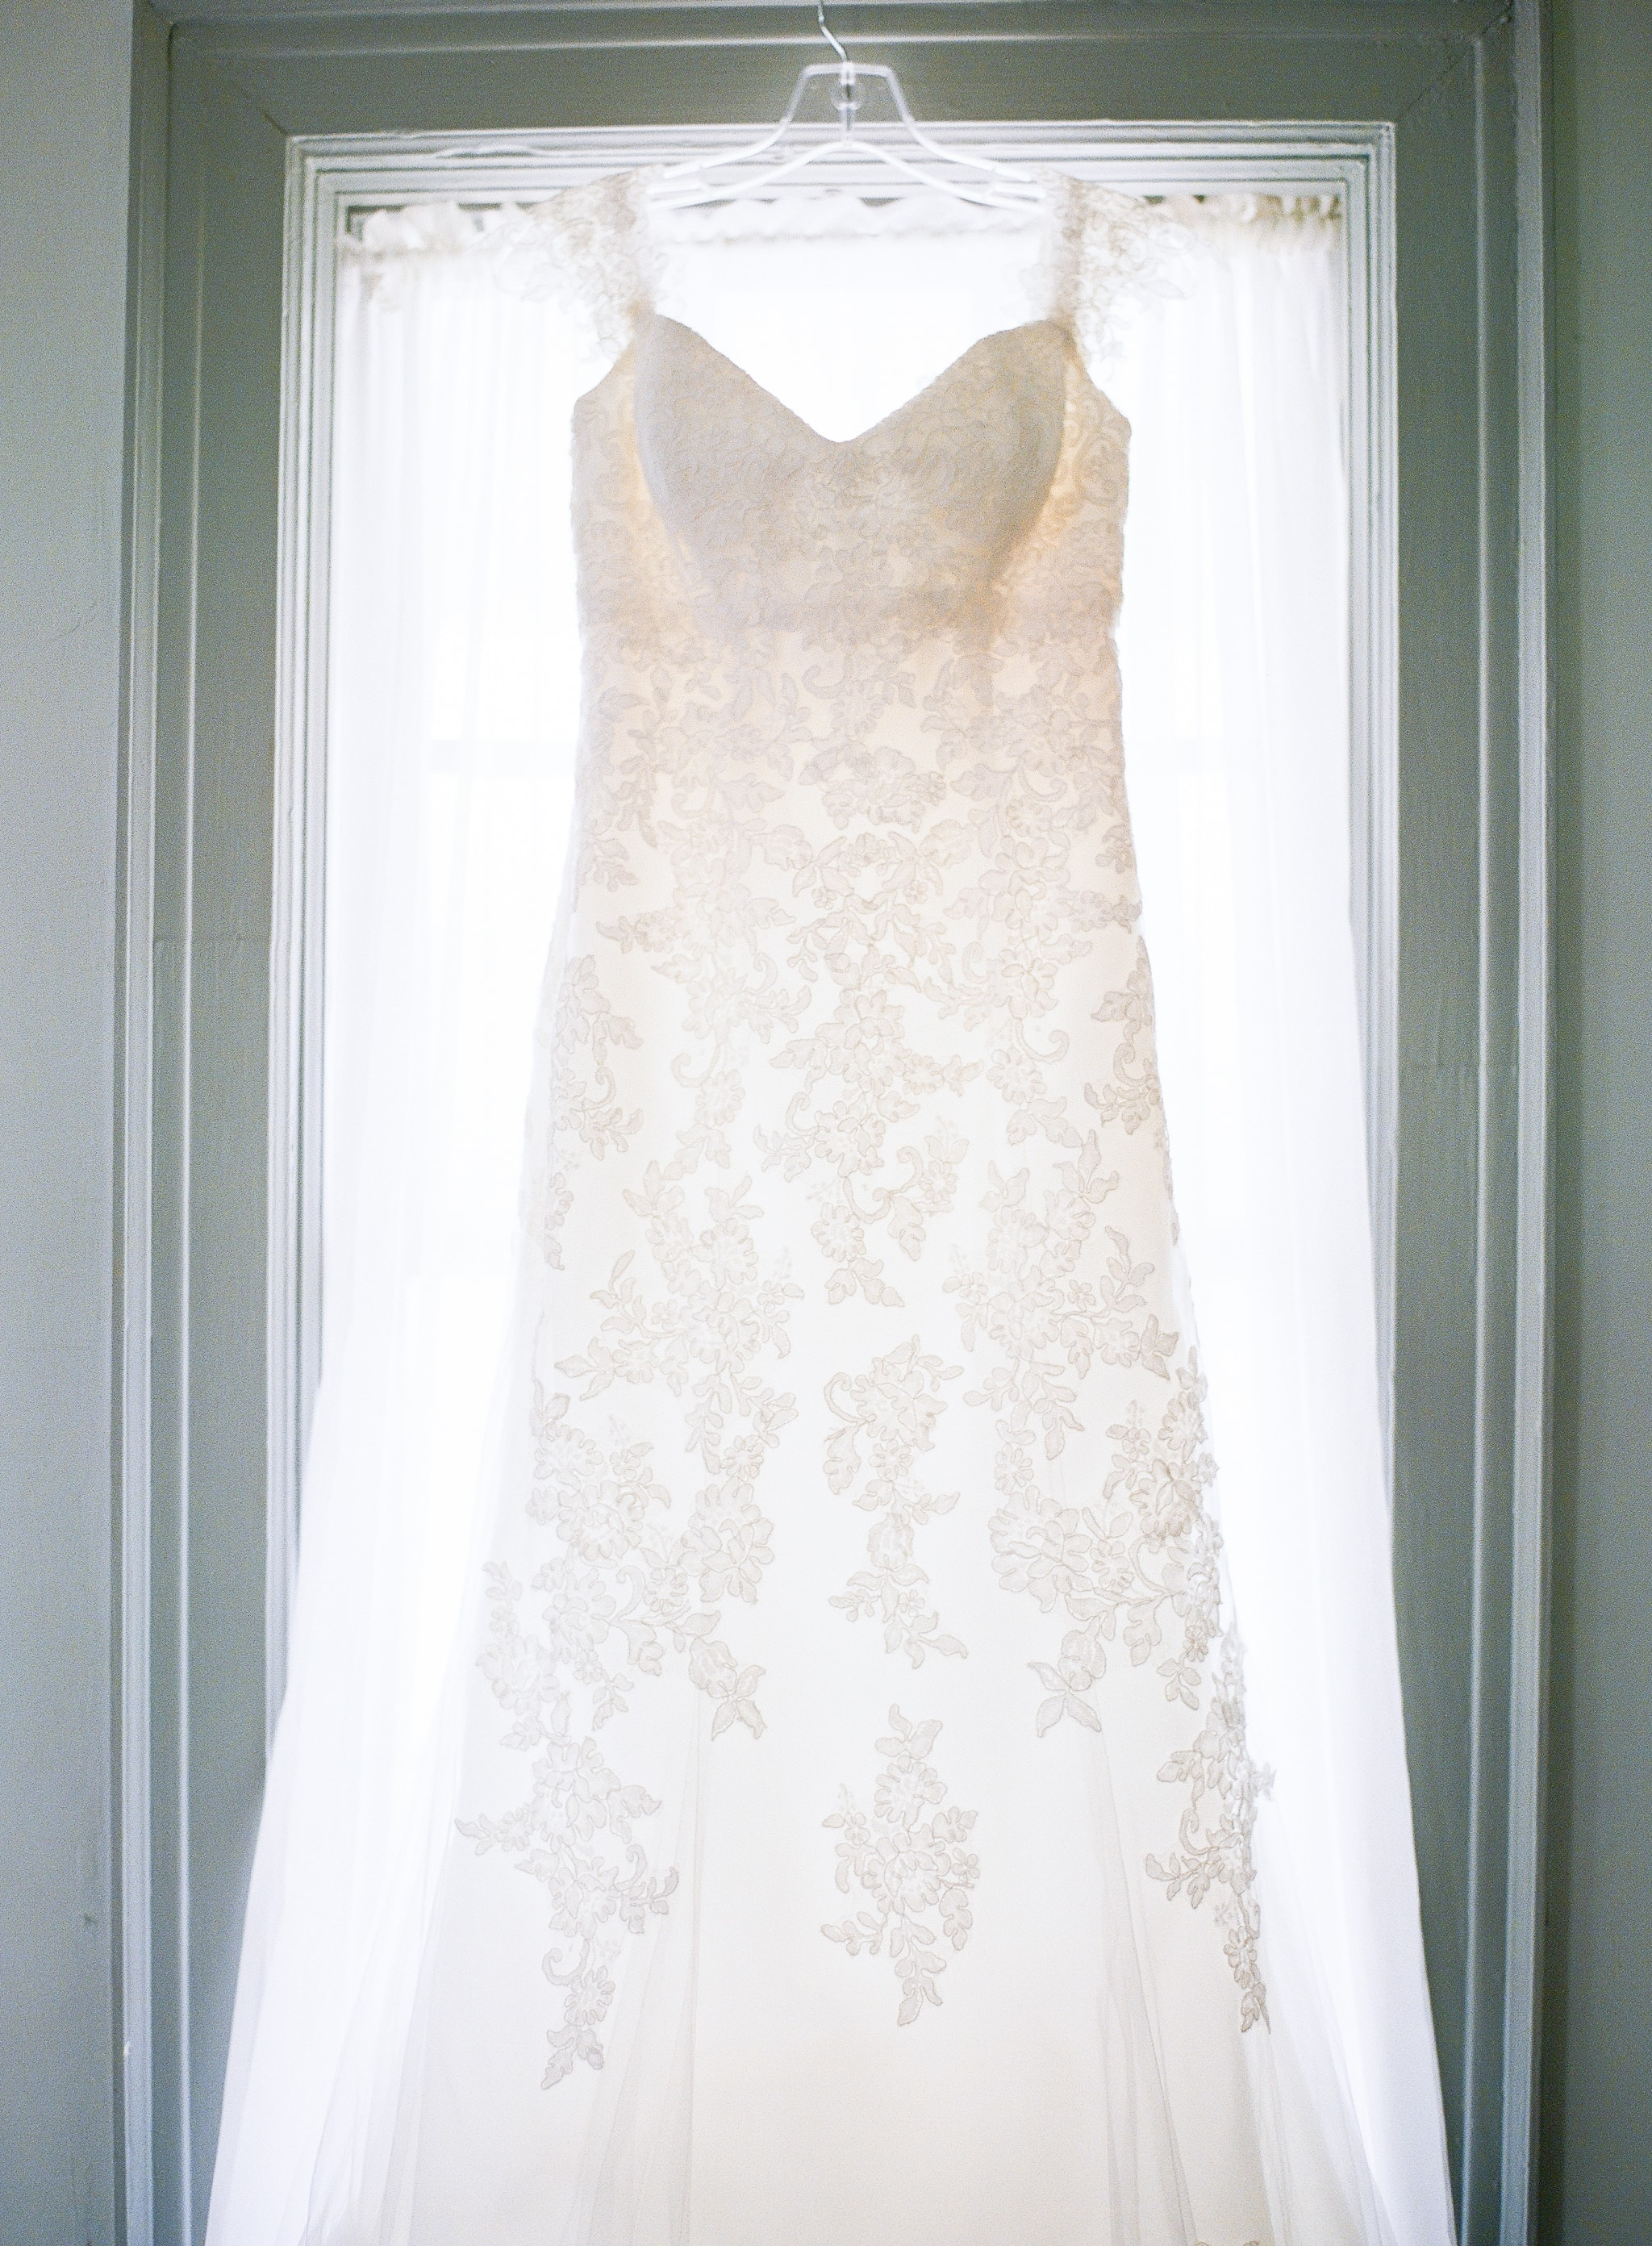 Detail shot of bridal gown for a stunning spring wedding at Vesuvius Vineyards coordinated by Magnificent Moments Weddings